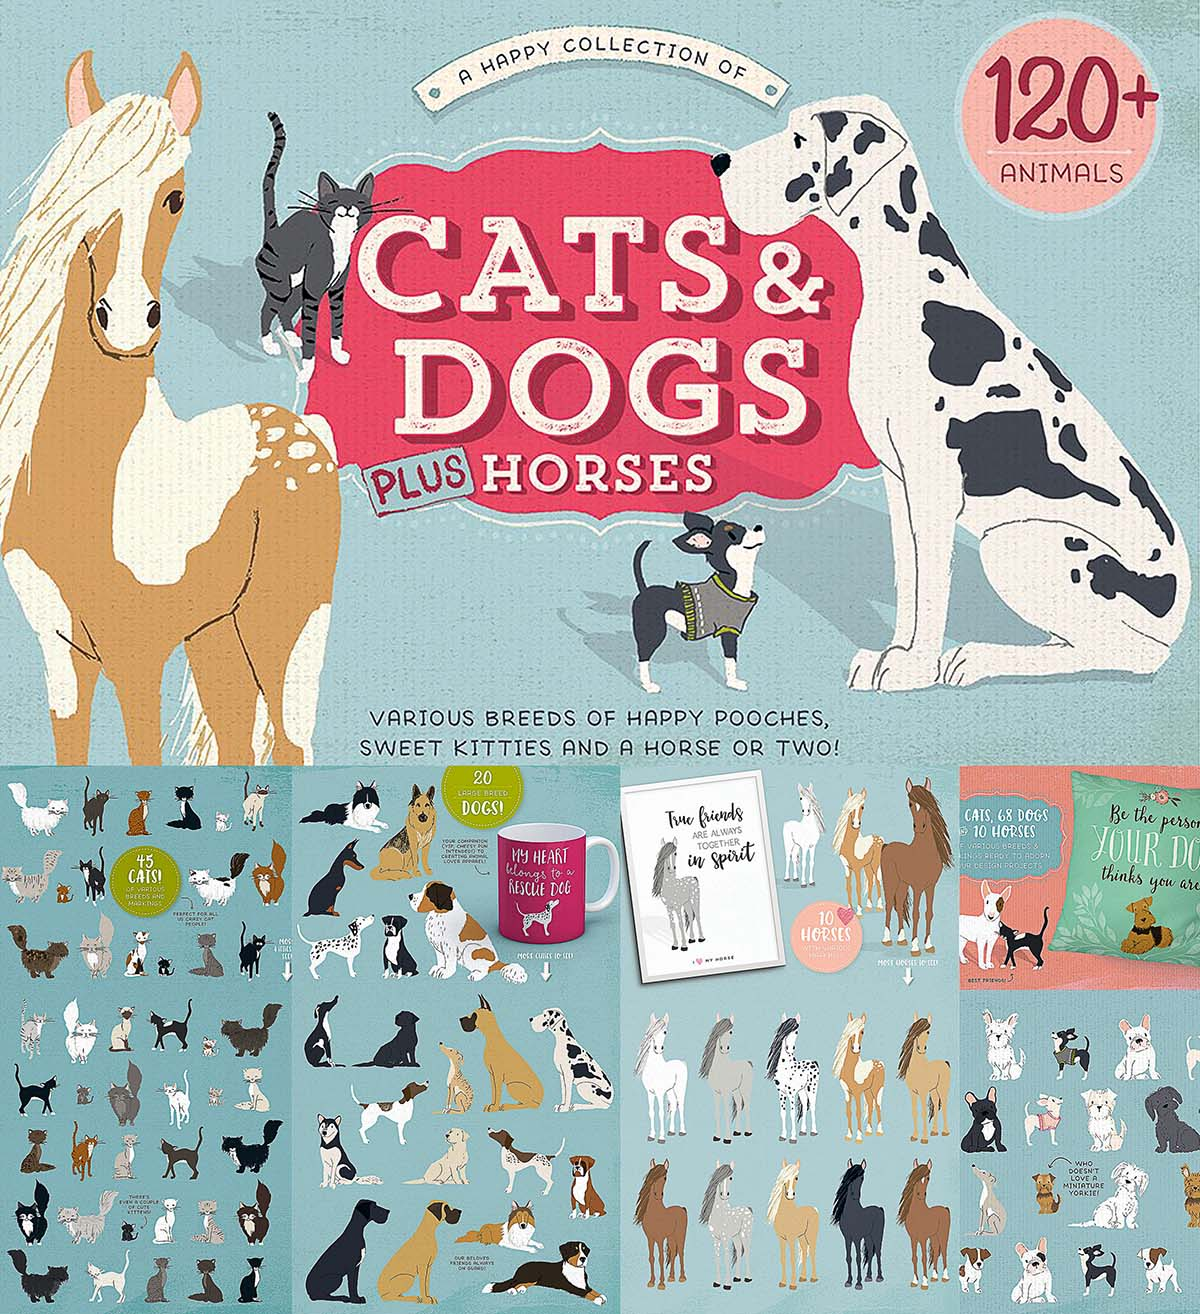 Animal Dog Free Porn dogs cats and horses illustrations | free download